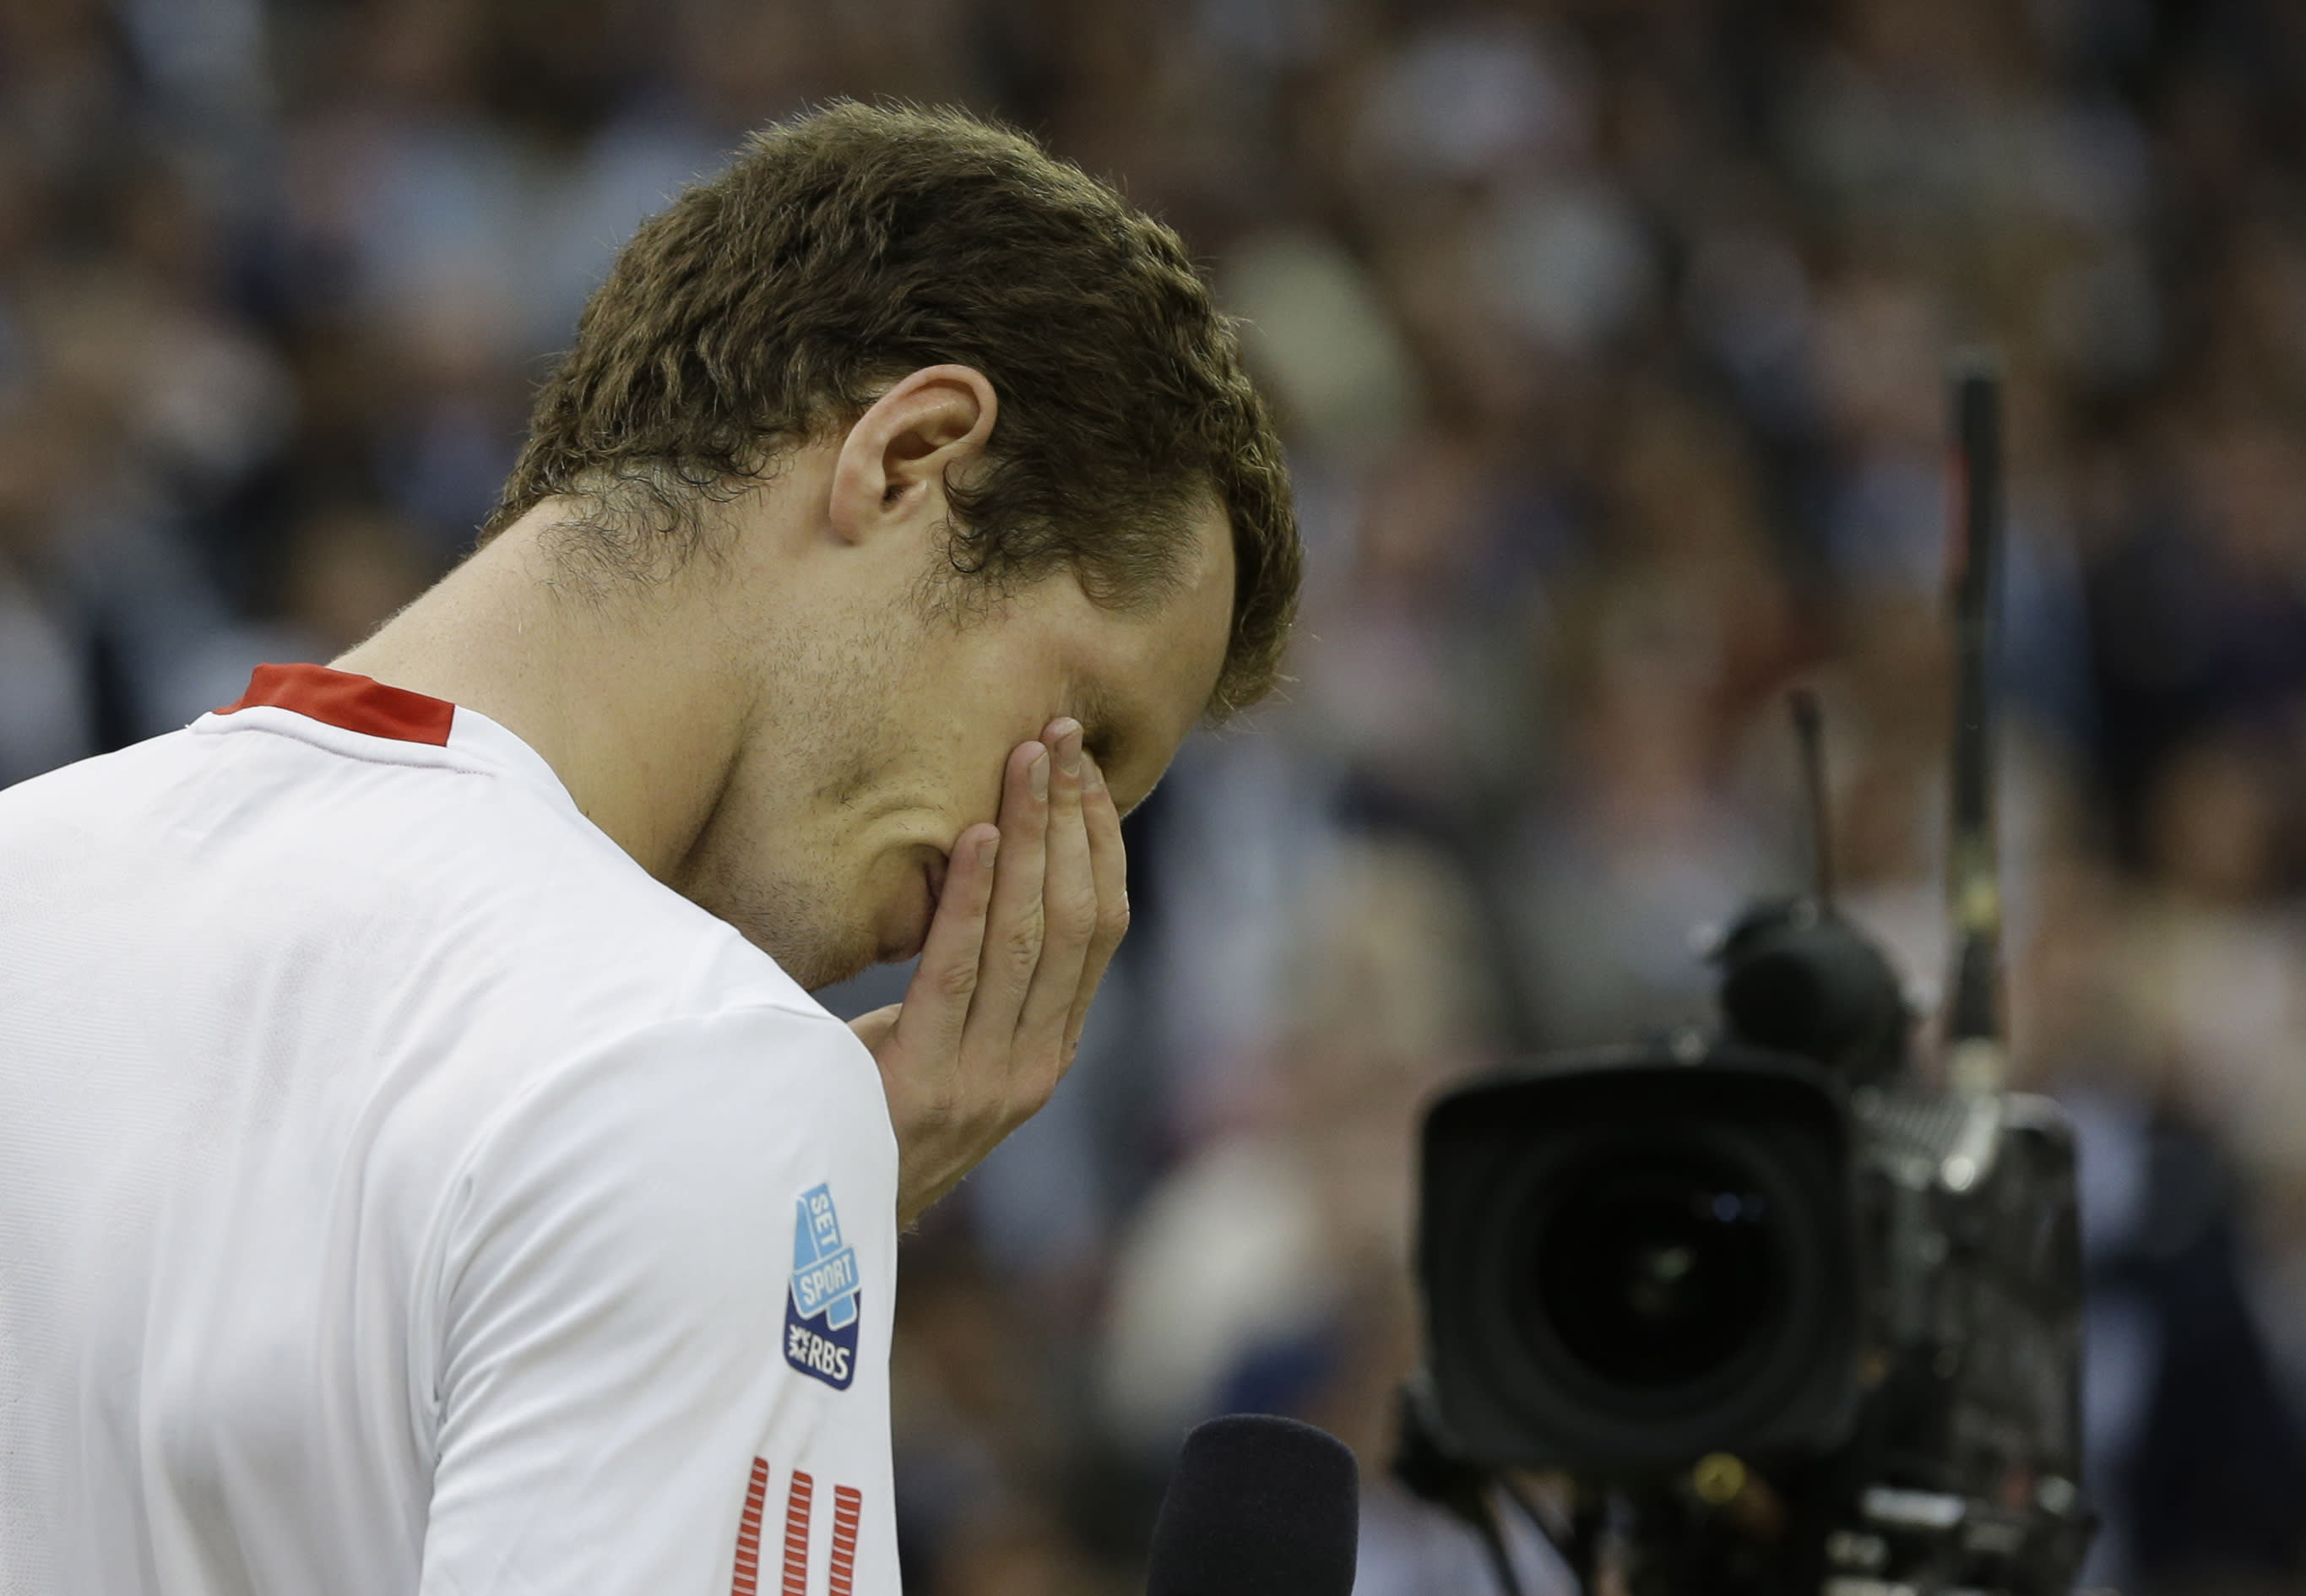 Andy Murray of Britain reacts as he speaks to spectators after his defeat to Roger Federer of Switzerland in the men's singles final match at the All England Lawn Tennis Championships at Wimbledon, England, Sunday, July 8, 2012. (AP Photo/Kirsty Wigglesworth)